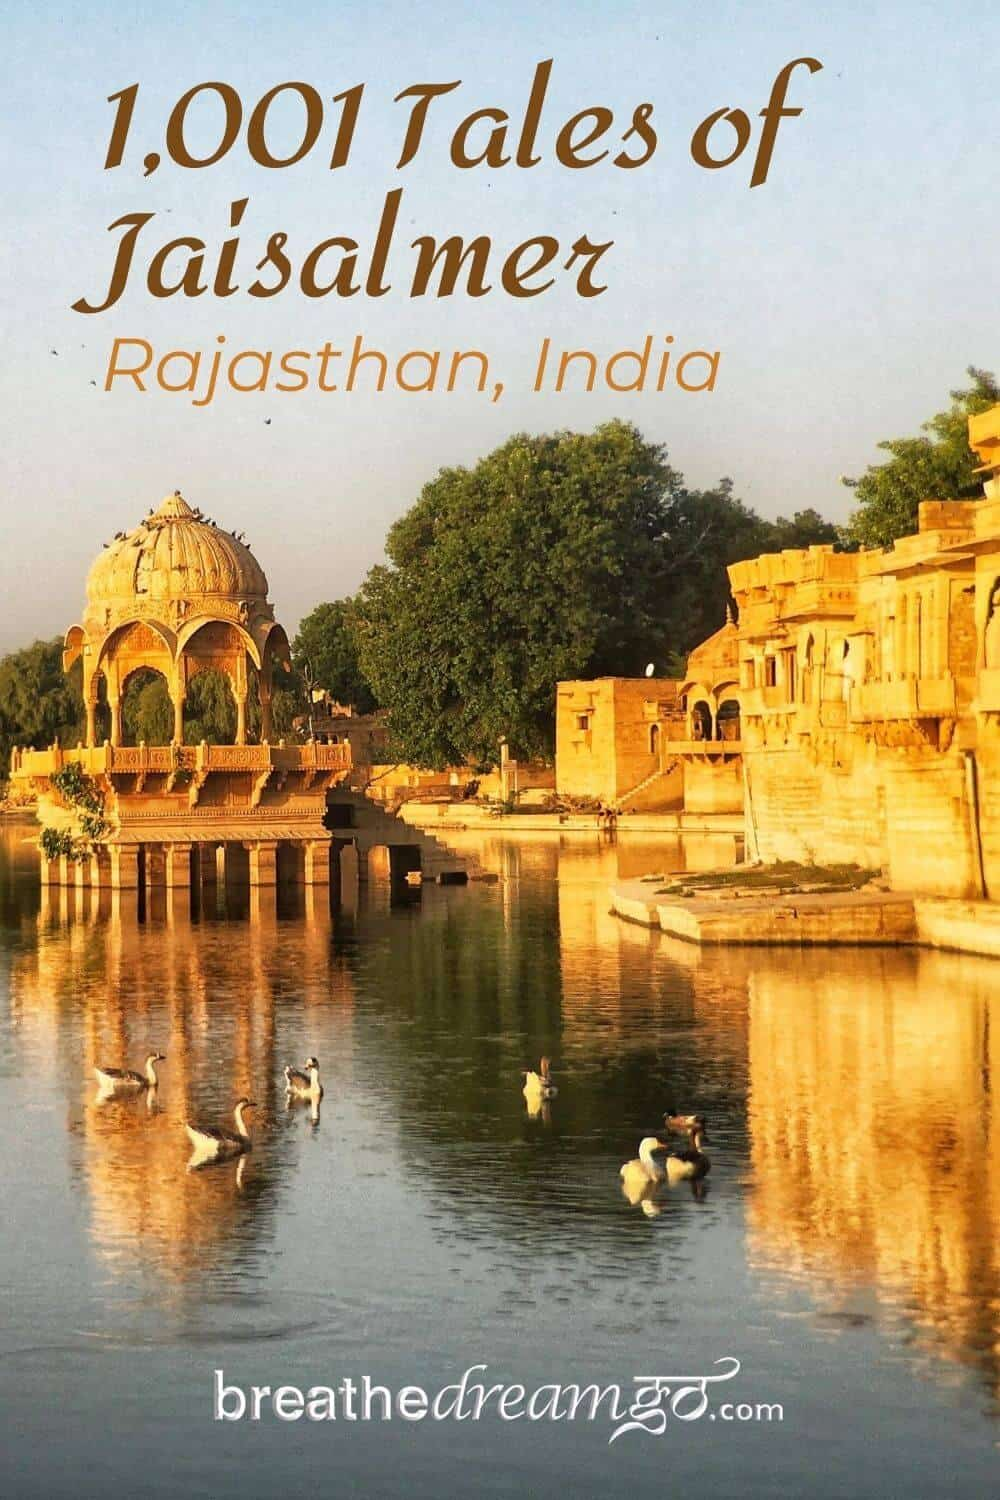 Tales of Jaisalmer, Rajasthan, India